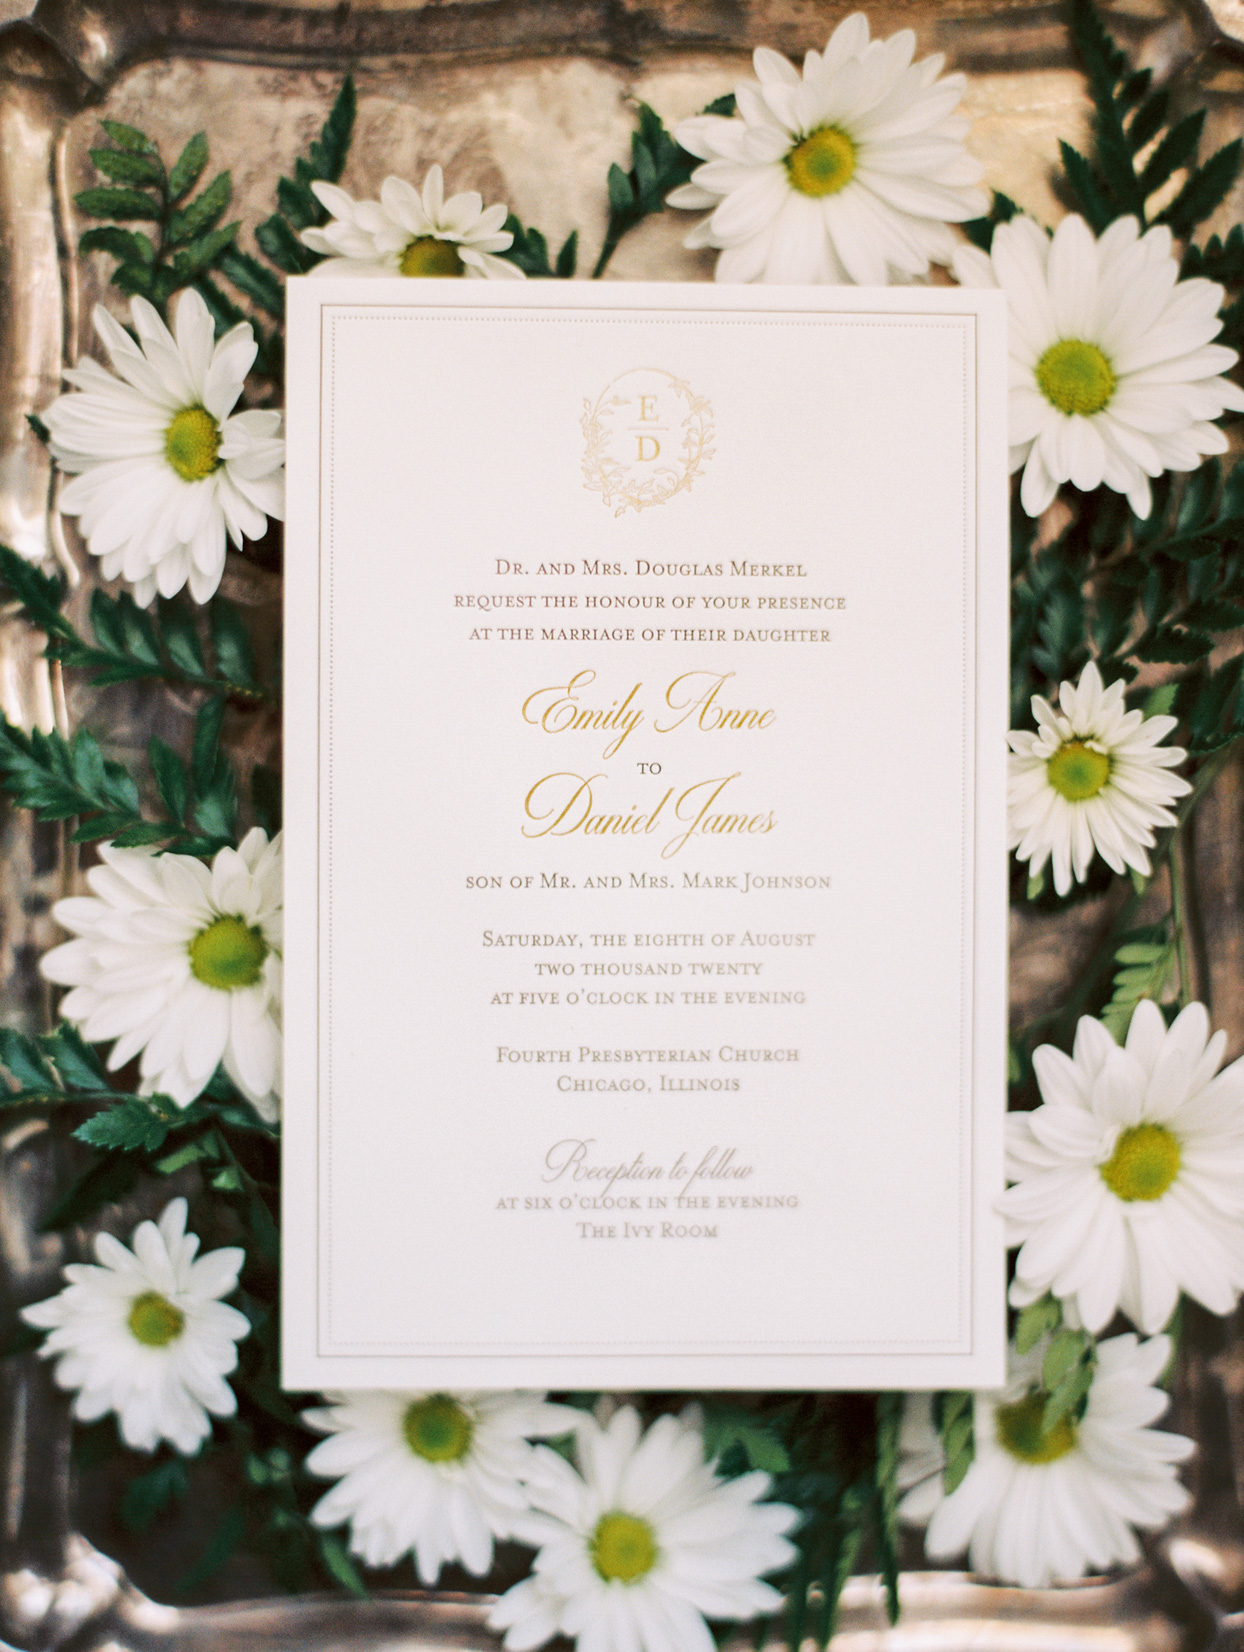 simple elegant wedding invitations surrounded by white flowers